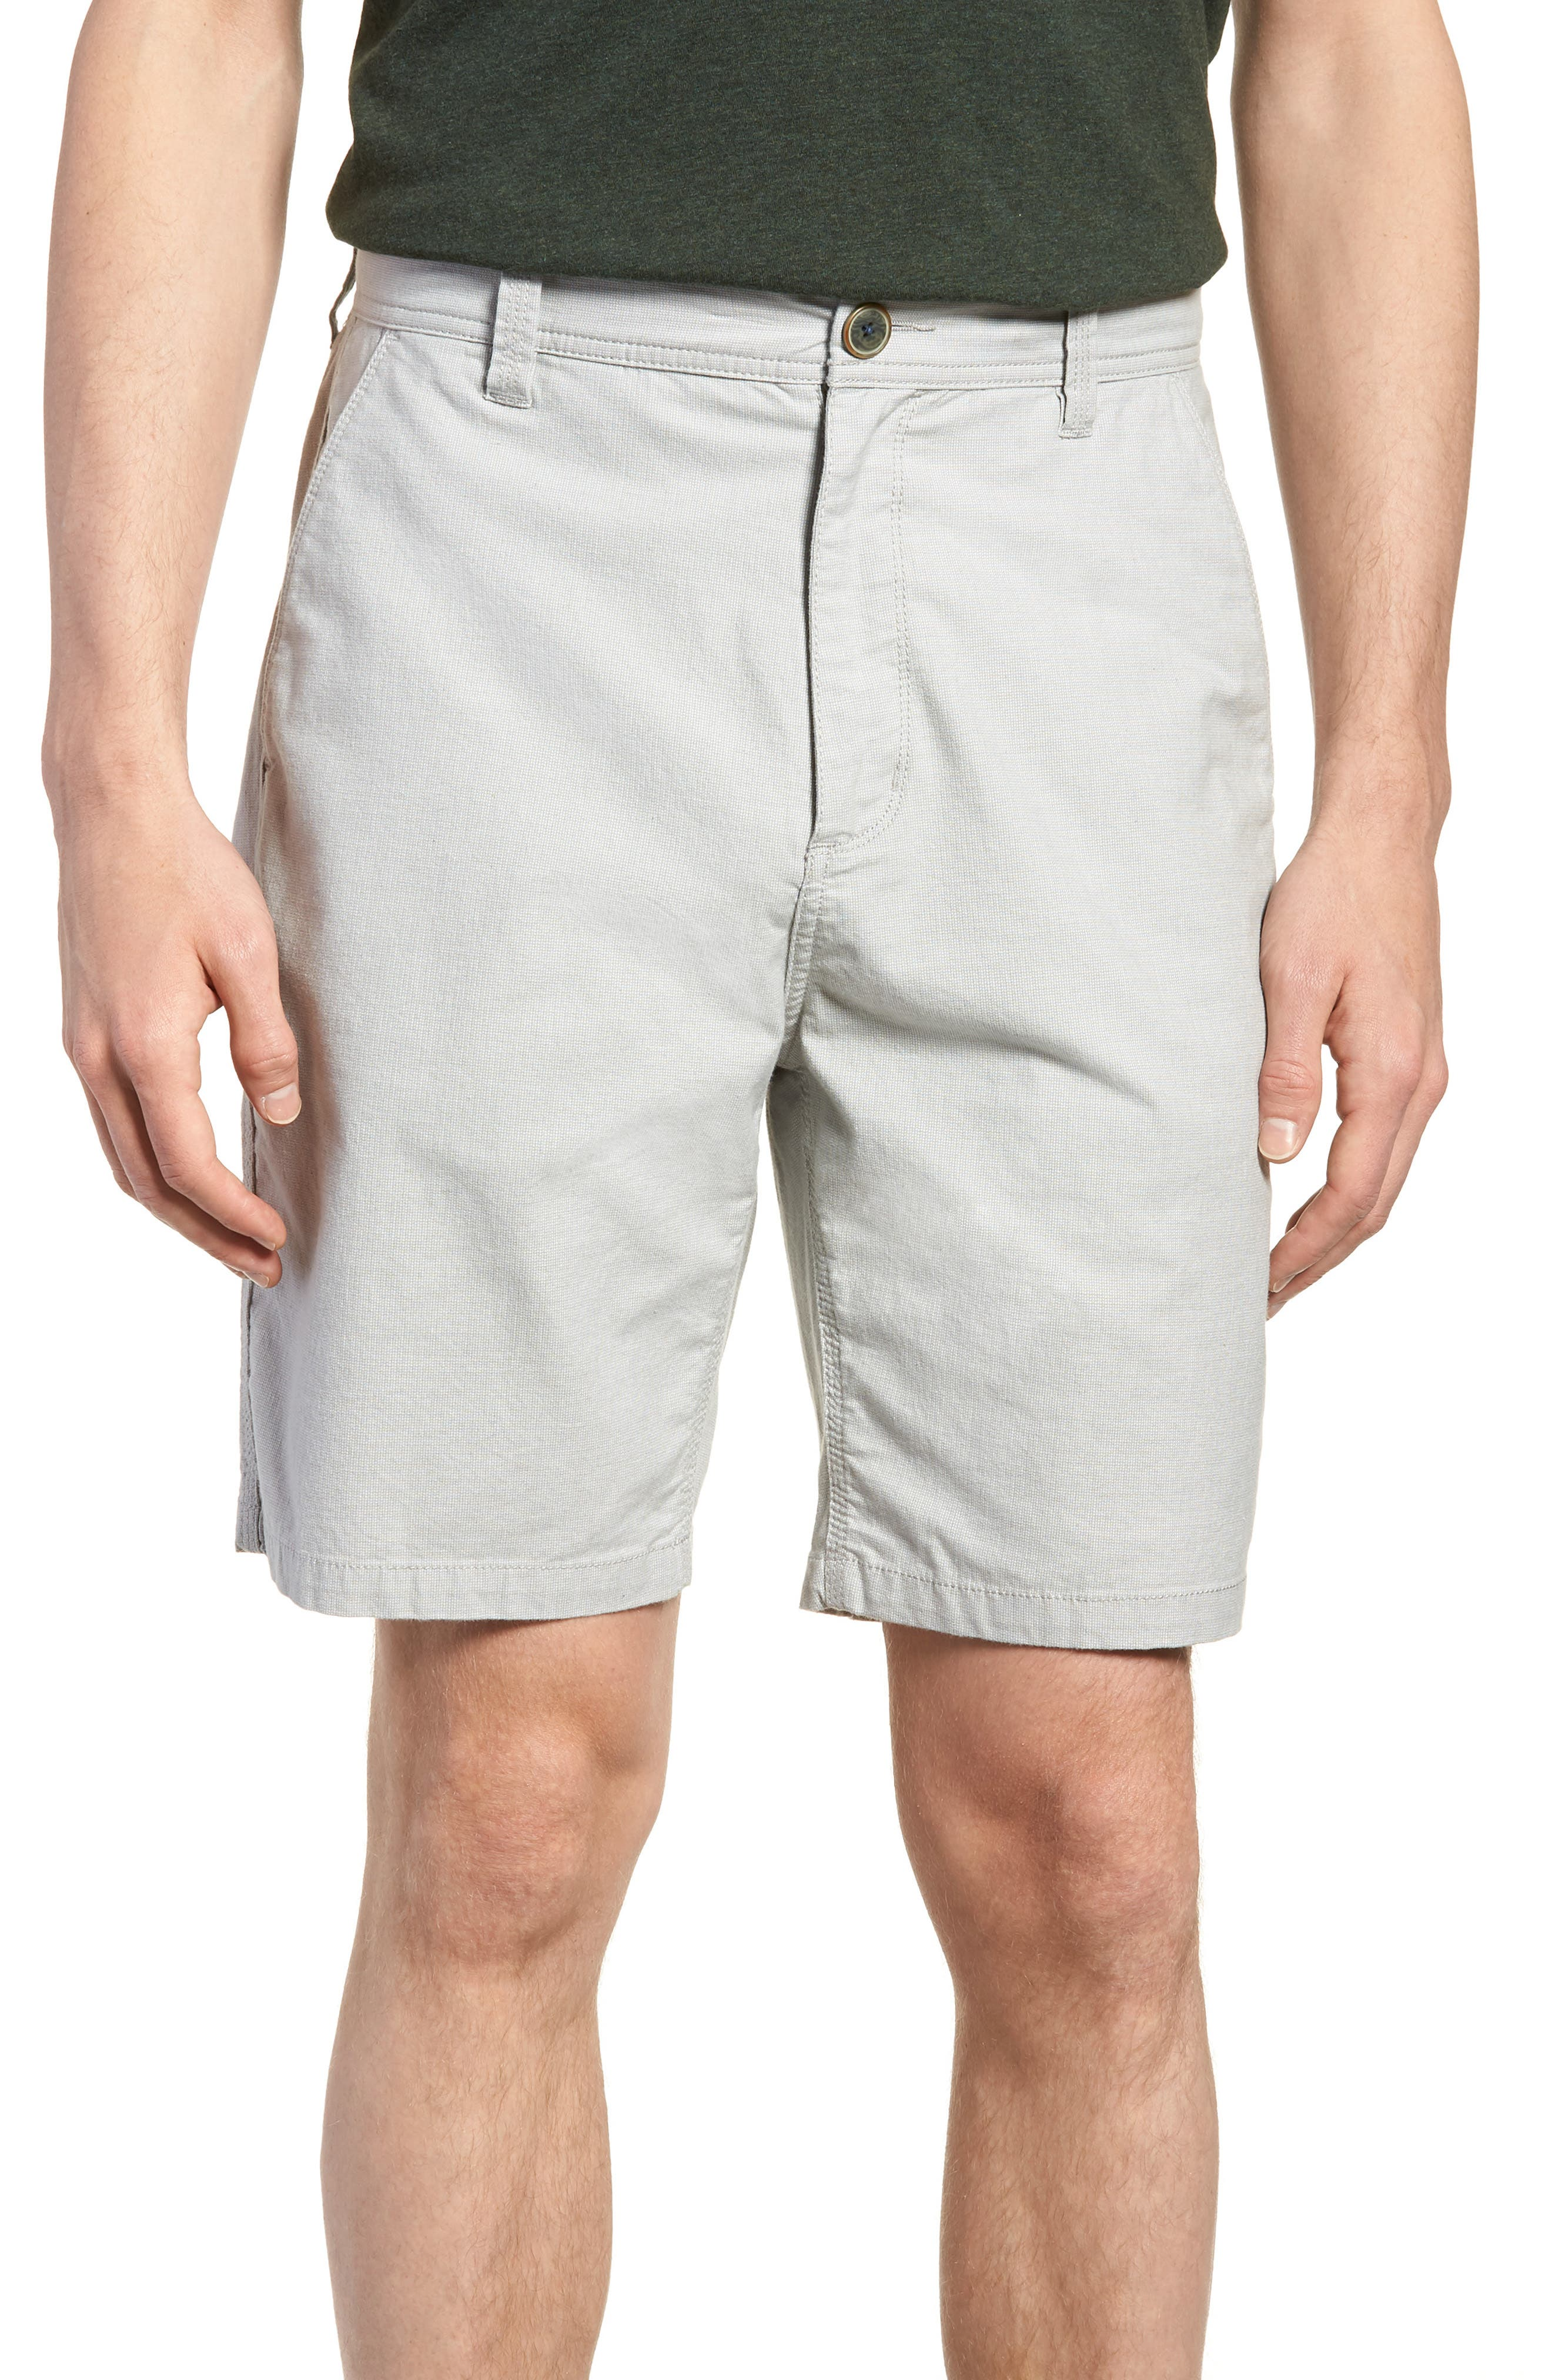 Millwater Shorts,                             Main thumbnail 1, color,                             SAND